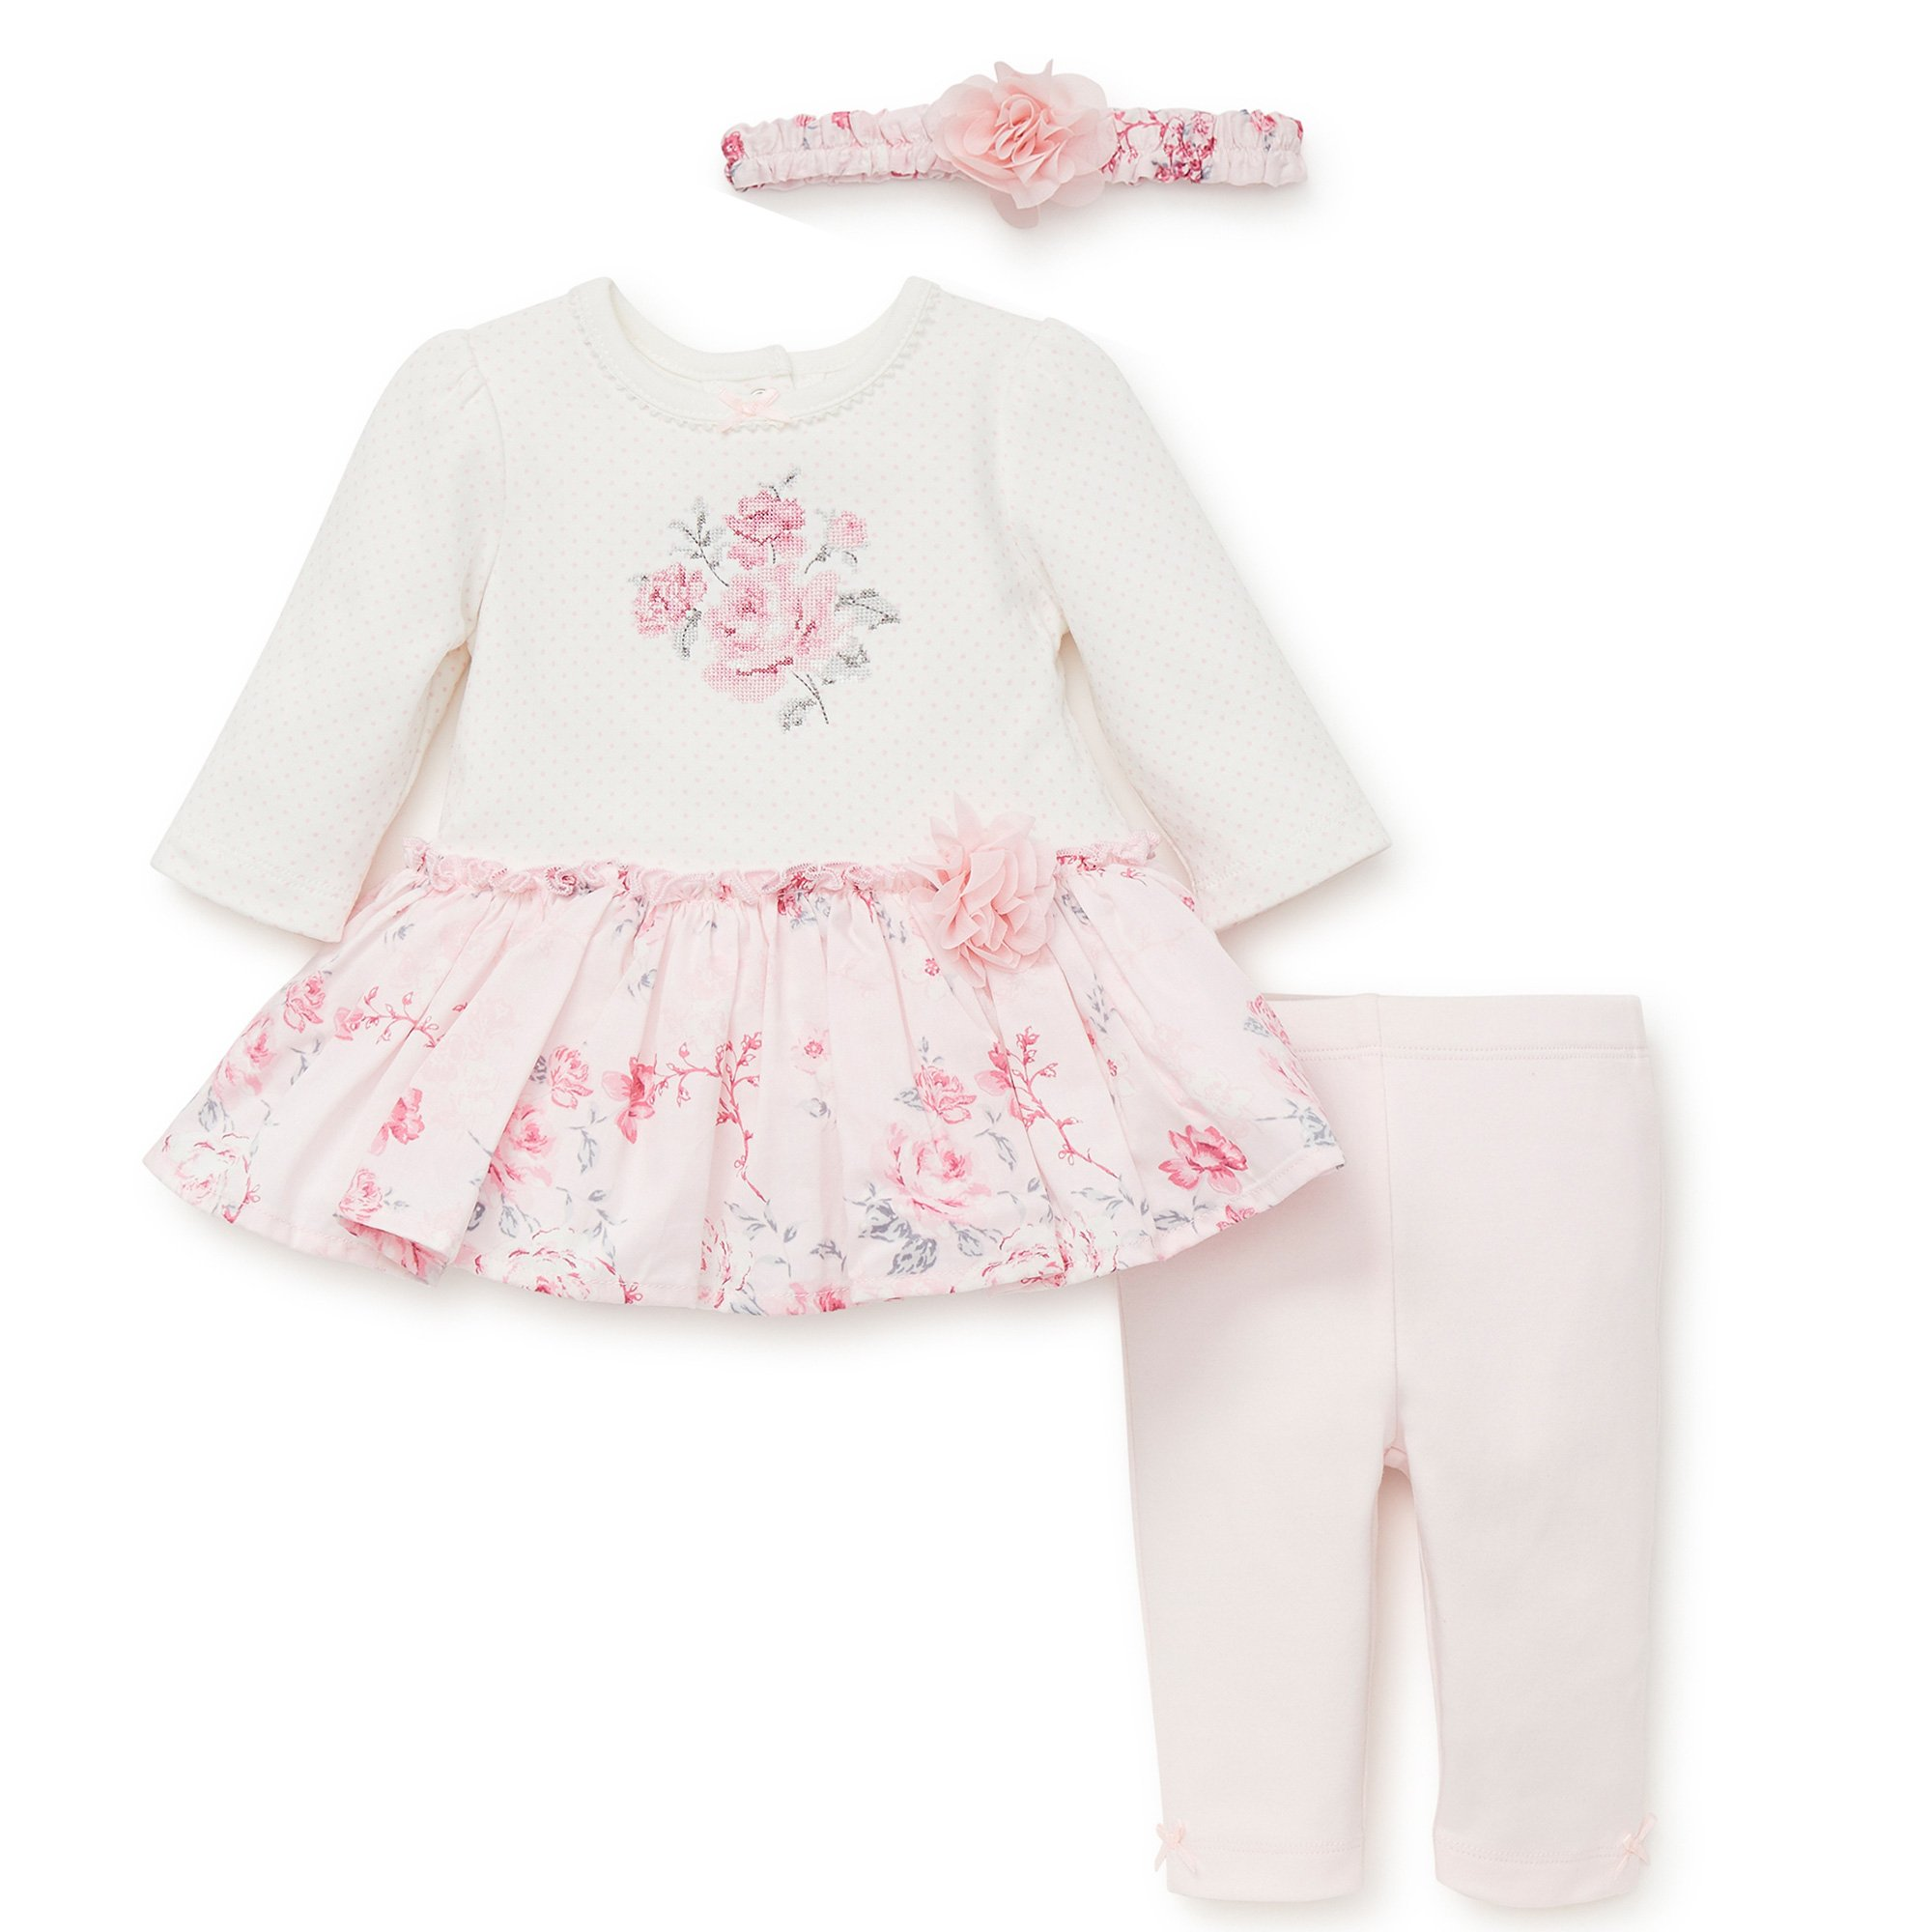 277d4b974 Little Me Lyla 3-Pc. Rose Floral Tunic and Legging Set for Baby Girls